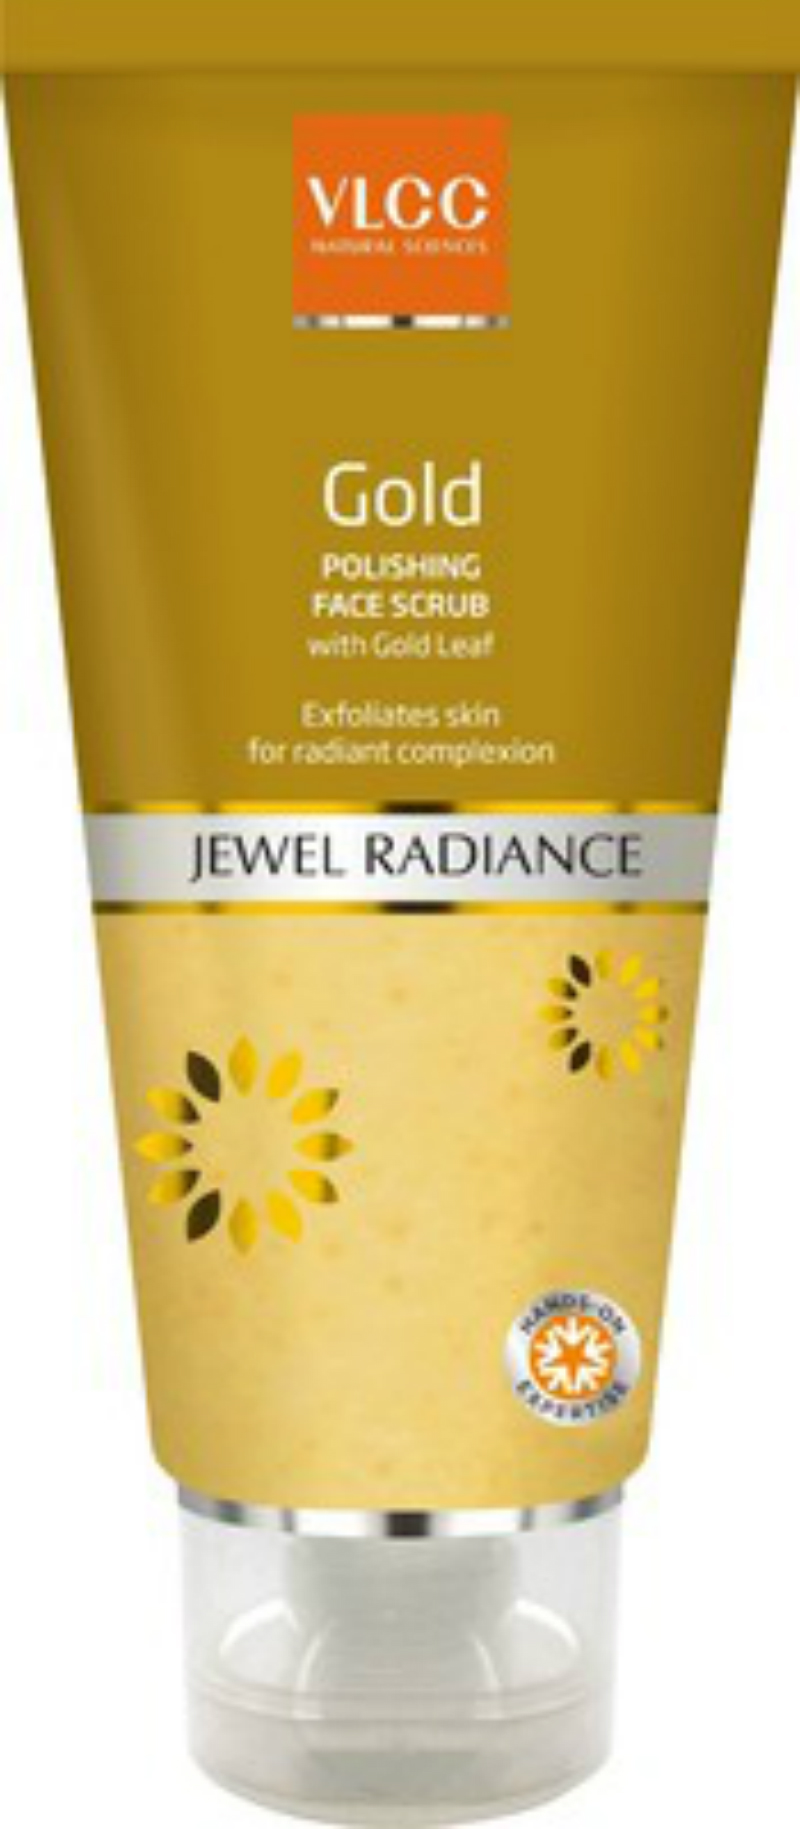 Vlcc Gold Jewel Radiance Polishing Face Scrub